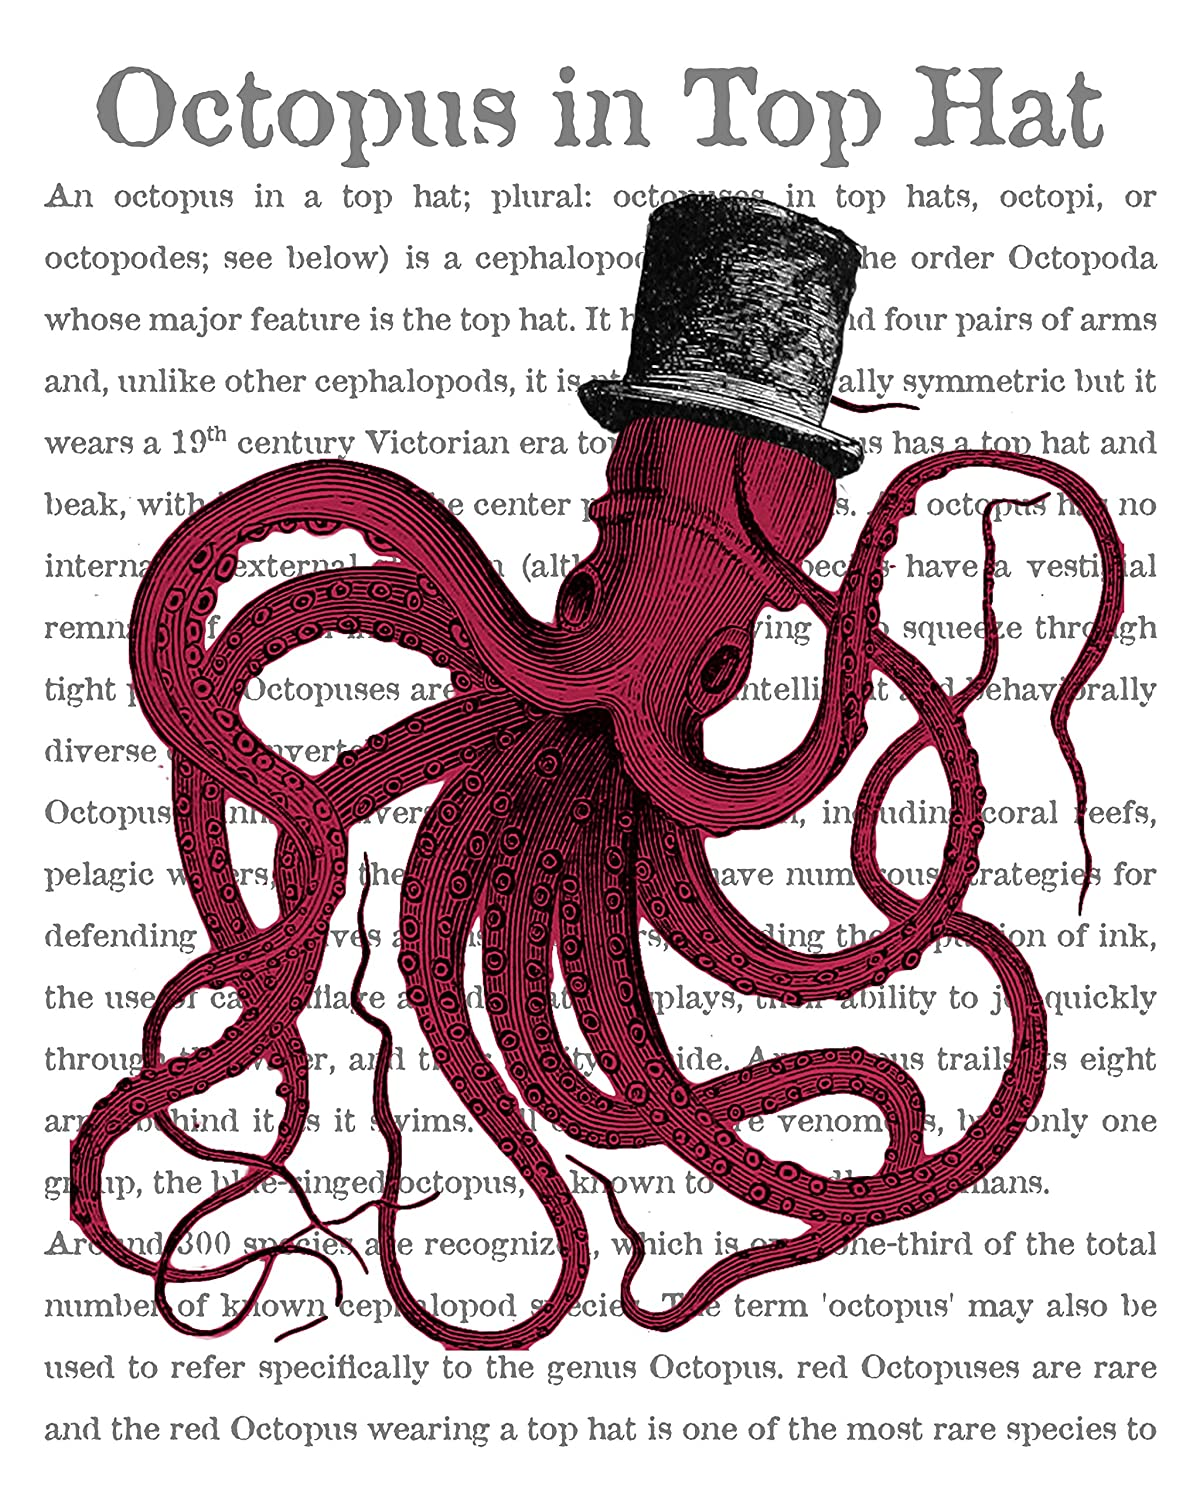 Amazon.com : 8x10 Fine Art Print of a Red Octopus in a Top Hat, Octopus Decor, Dictionary Print, Victorian Hat Giclee Print - 8x10 : Everything Else